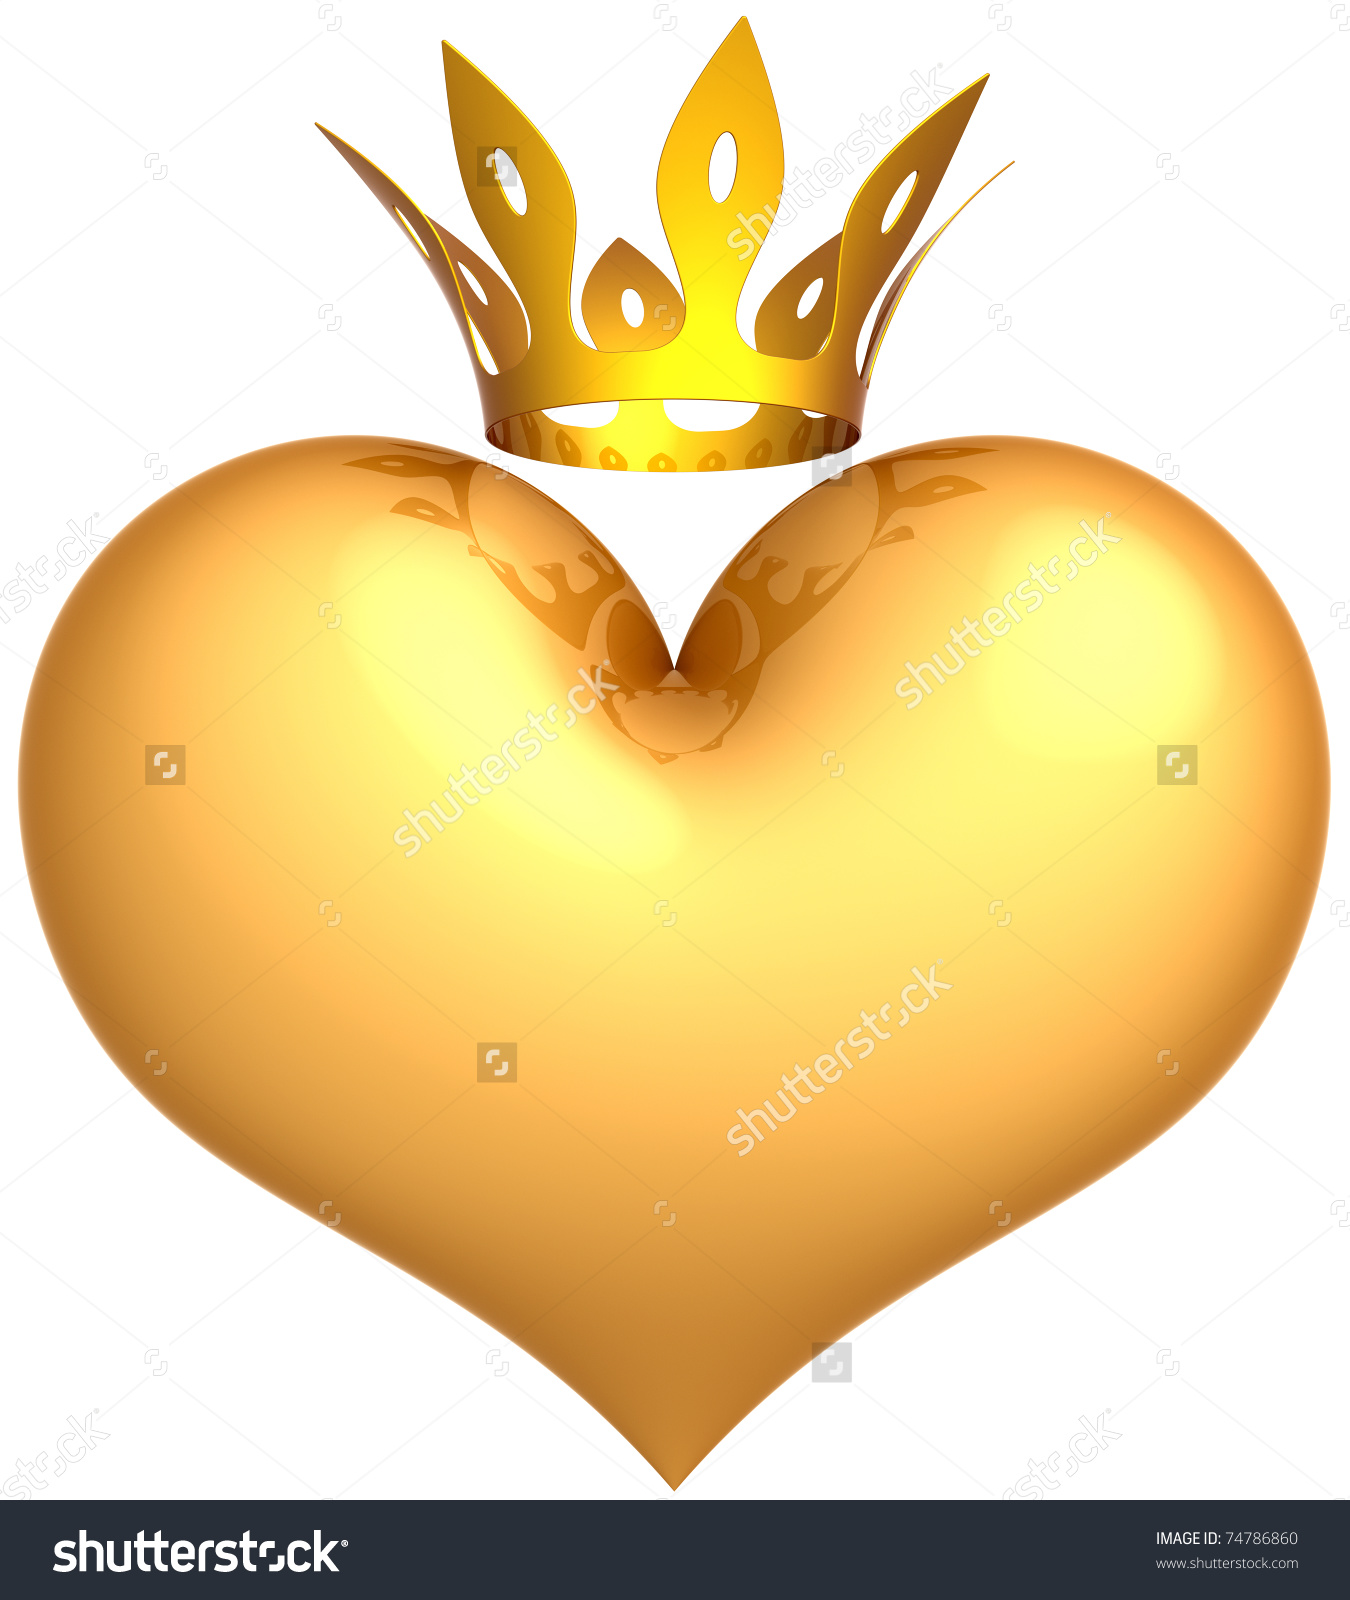 Queen of hearts crown clipart transparent download Heart King Golden Crown Abstract Royal Stock Illustration 74786860 ... transparent download